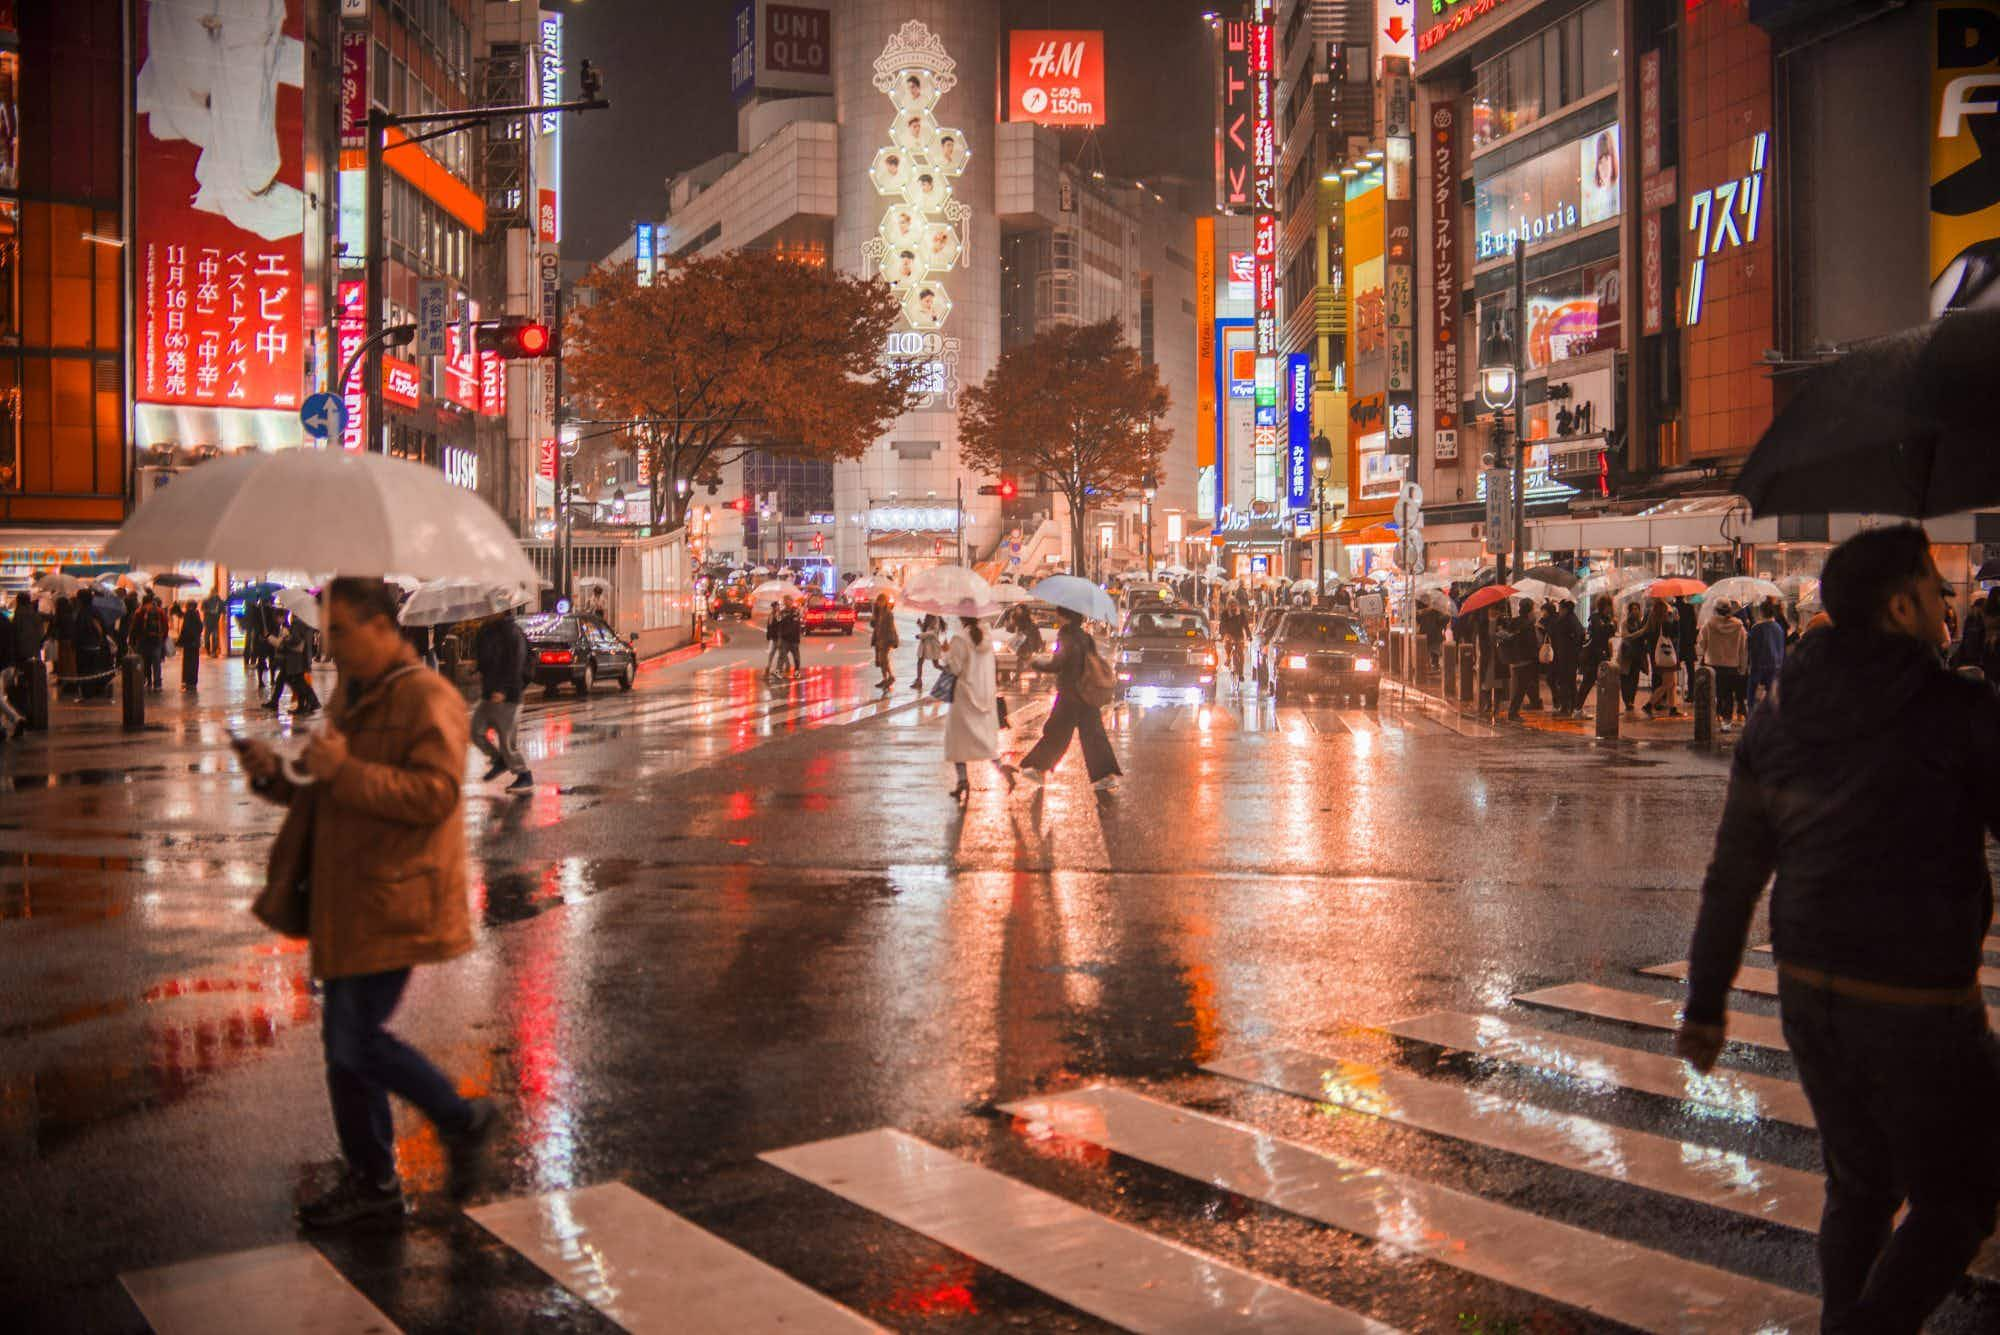 Travelling to Tokyo reignited this photographer's love of taking pictures